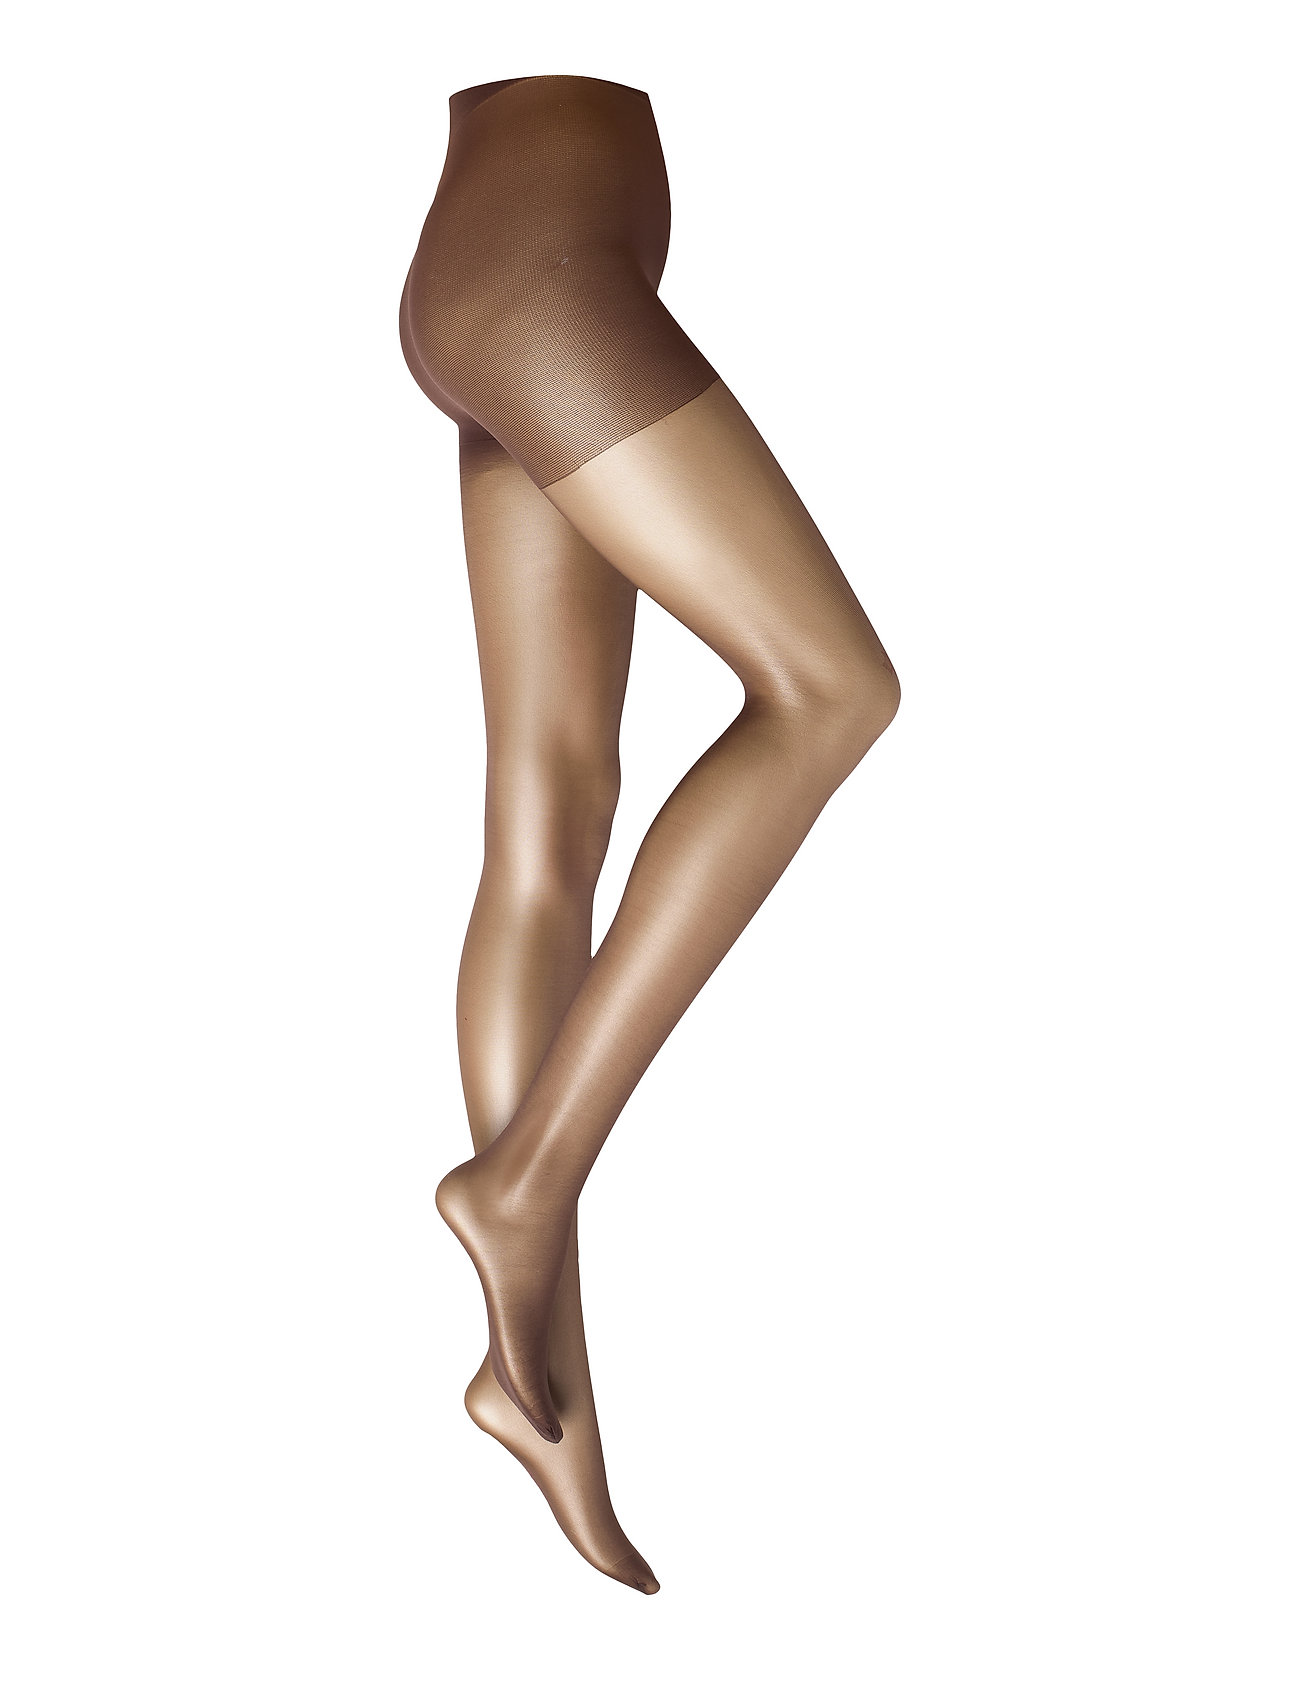 Decoy DECOY tights silk look 20 den - MOCCA